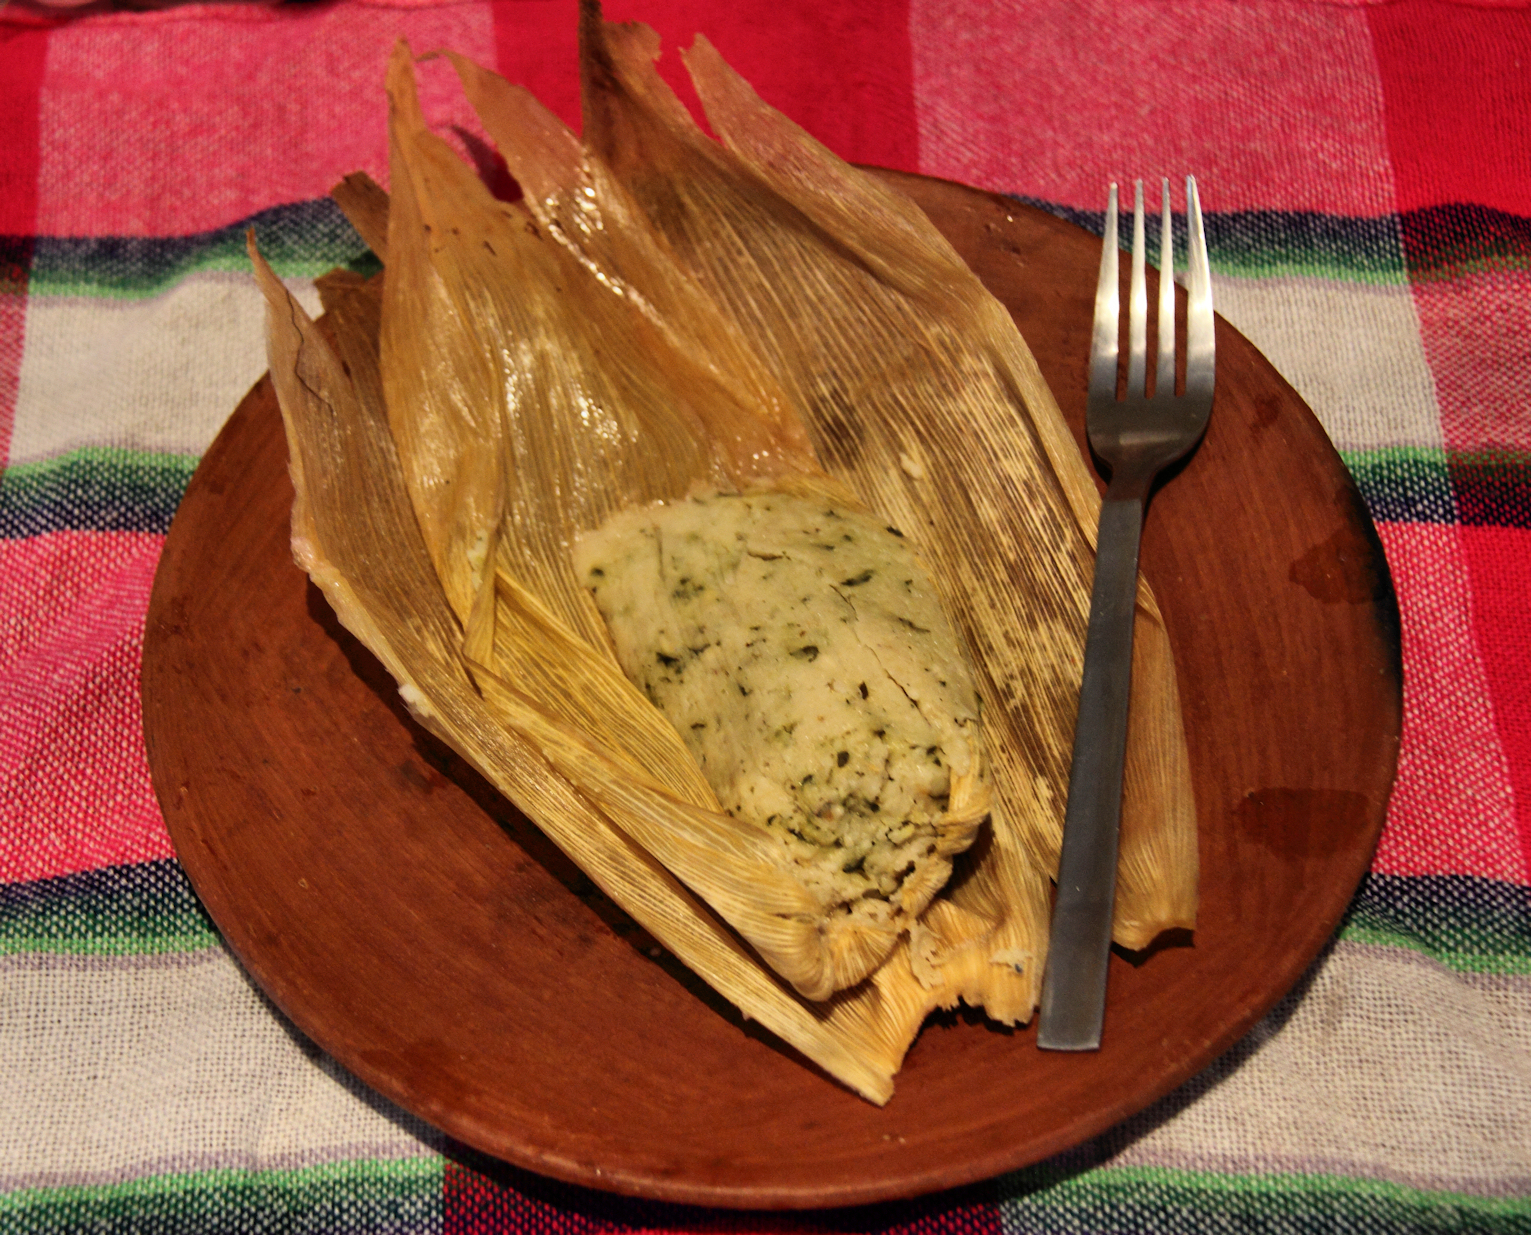 http://upload.wikimedia.org/wikipedia/commons/b/bd/Tamal_chipil%C3%ADn.jpg